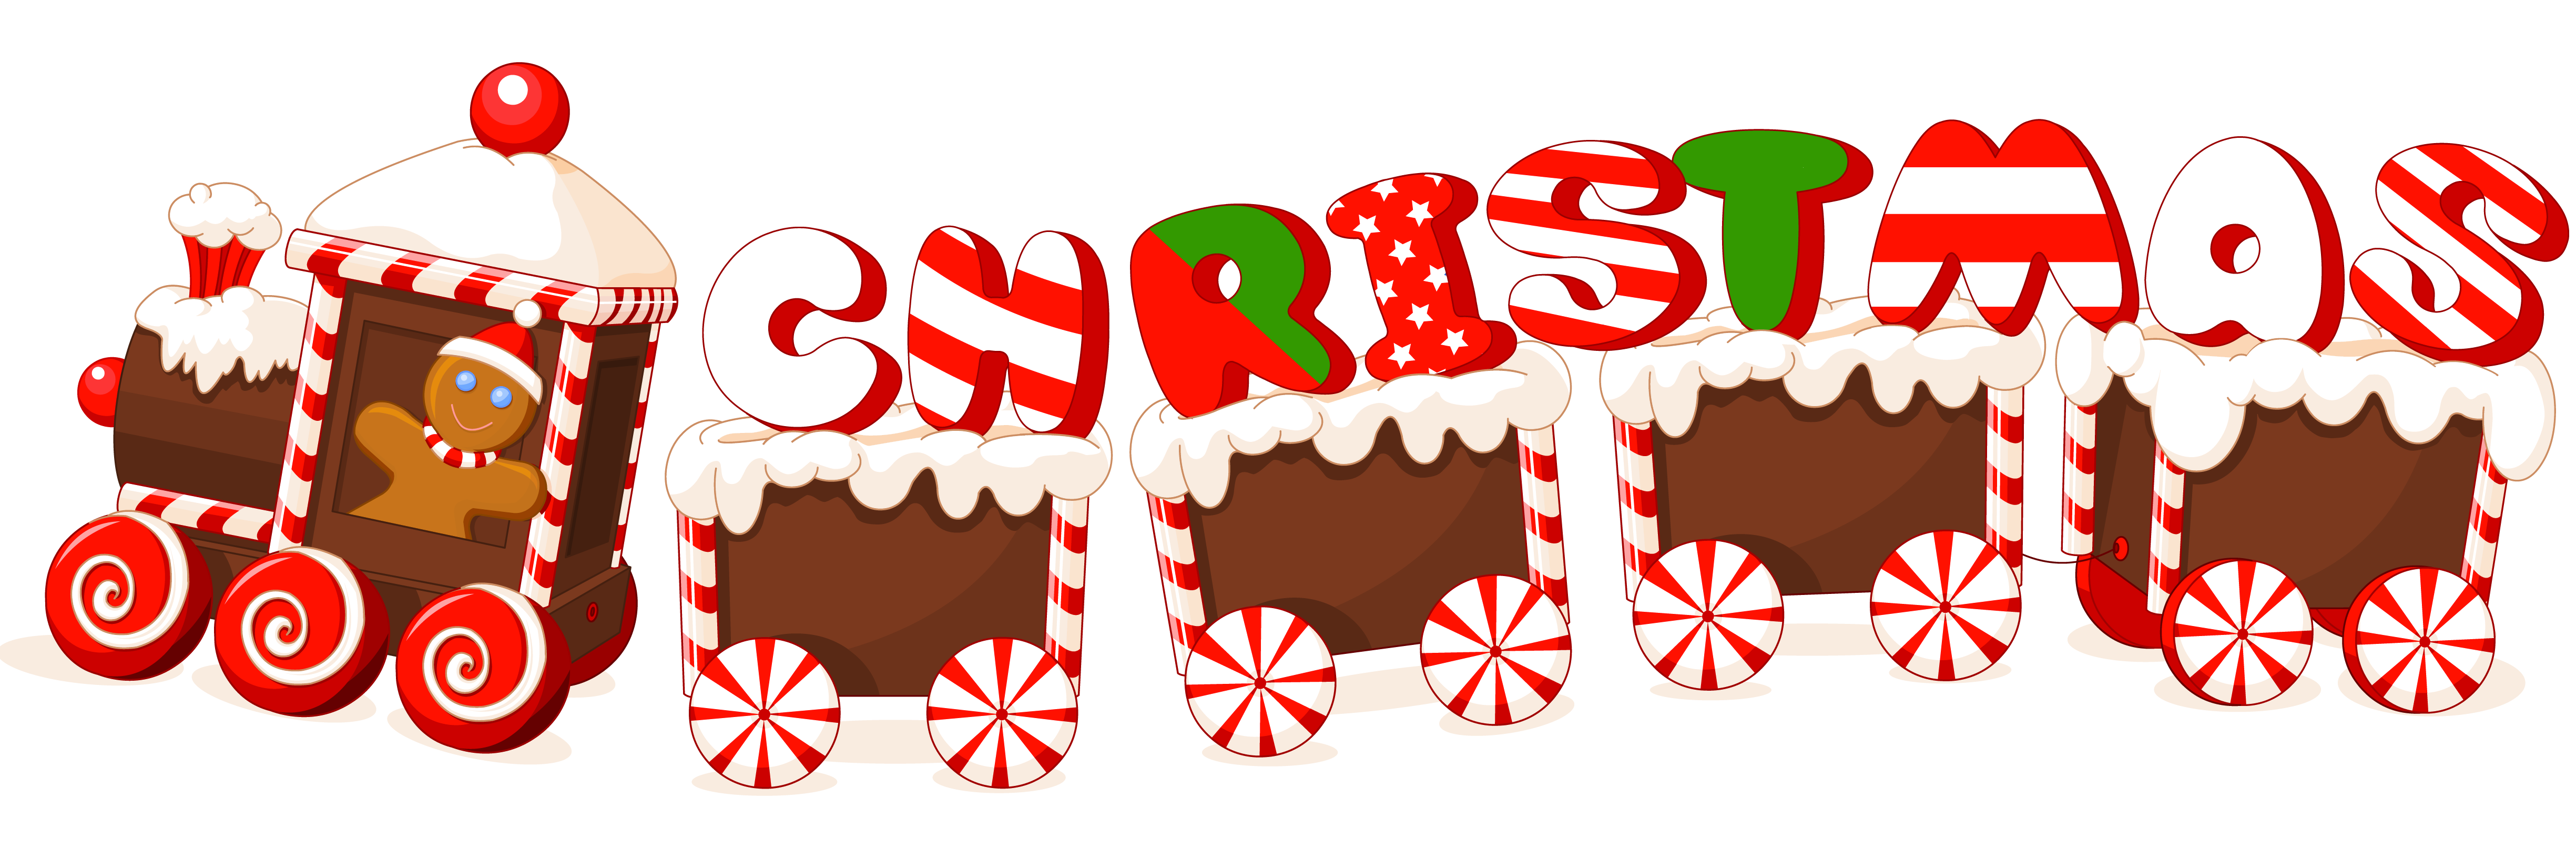 341 Christmas Candy free clipart.